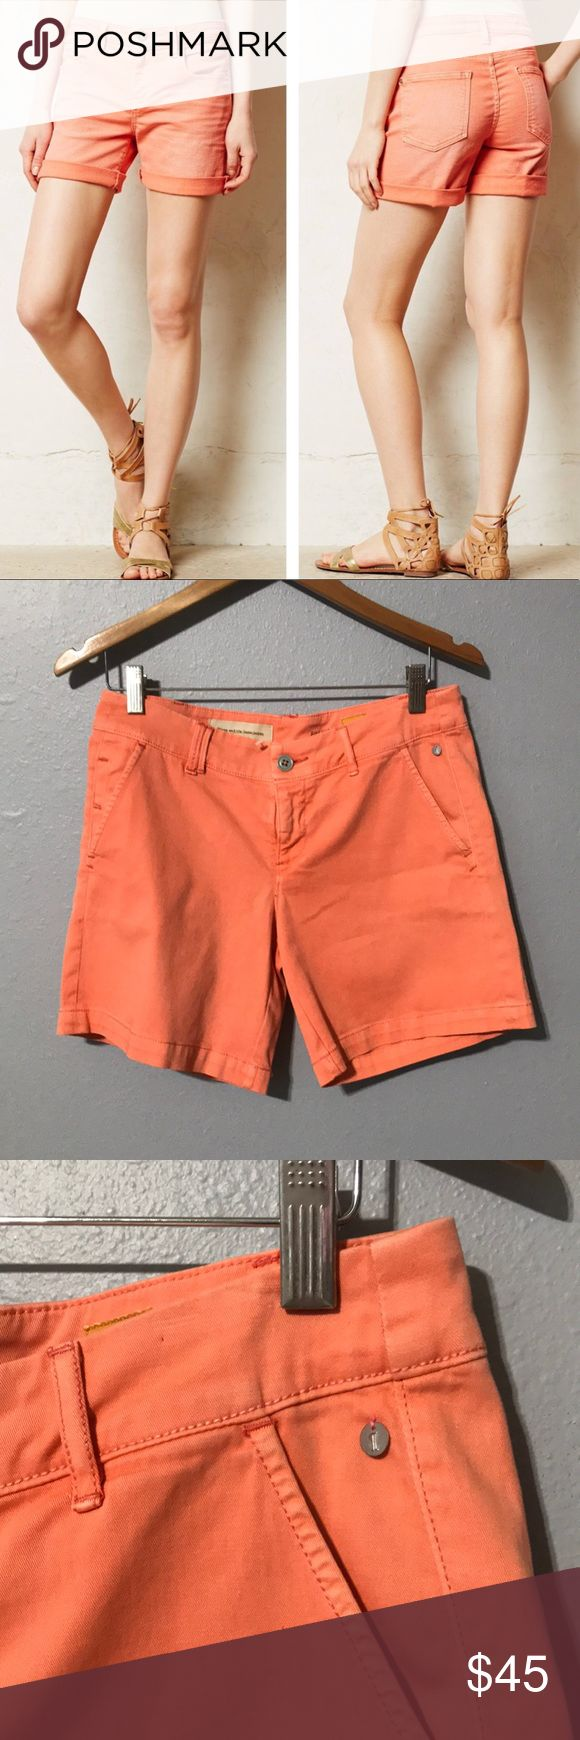 "Pilcro and the letterpress Coral Shorts Pilcro and the letterpress by Anthropologie. Gently preloved condition with no rips or stains. 4"" inseam. Please see all photos for accurate description of condition. Happy to answer any questions. Anthropologie Shorts"